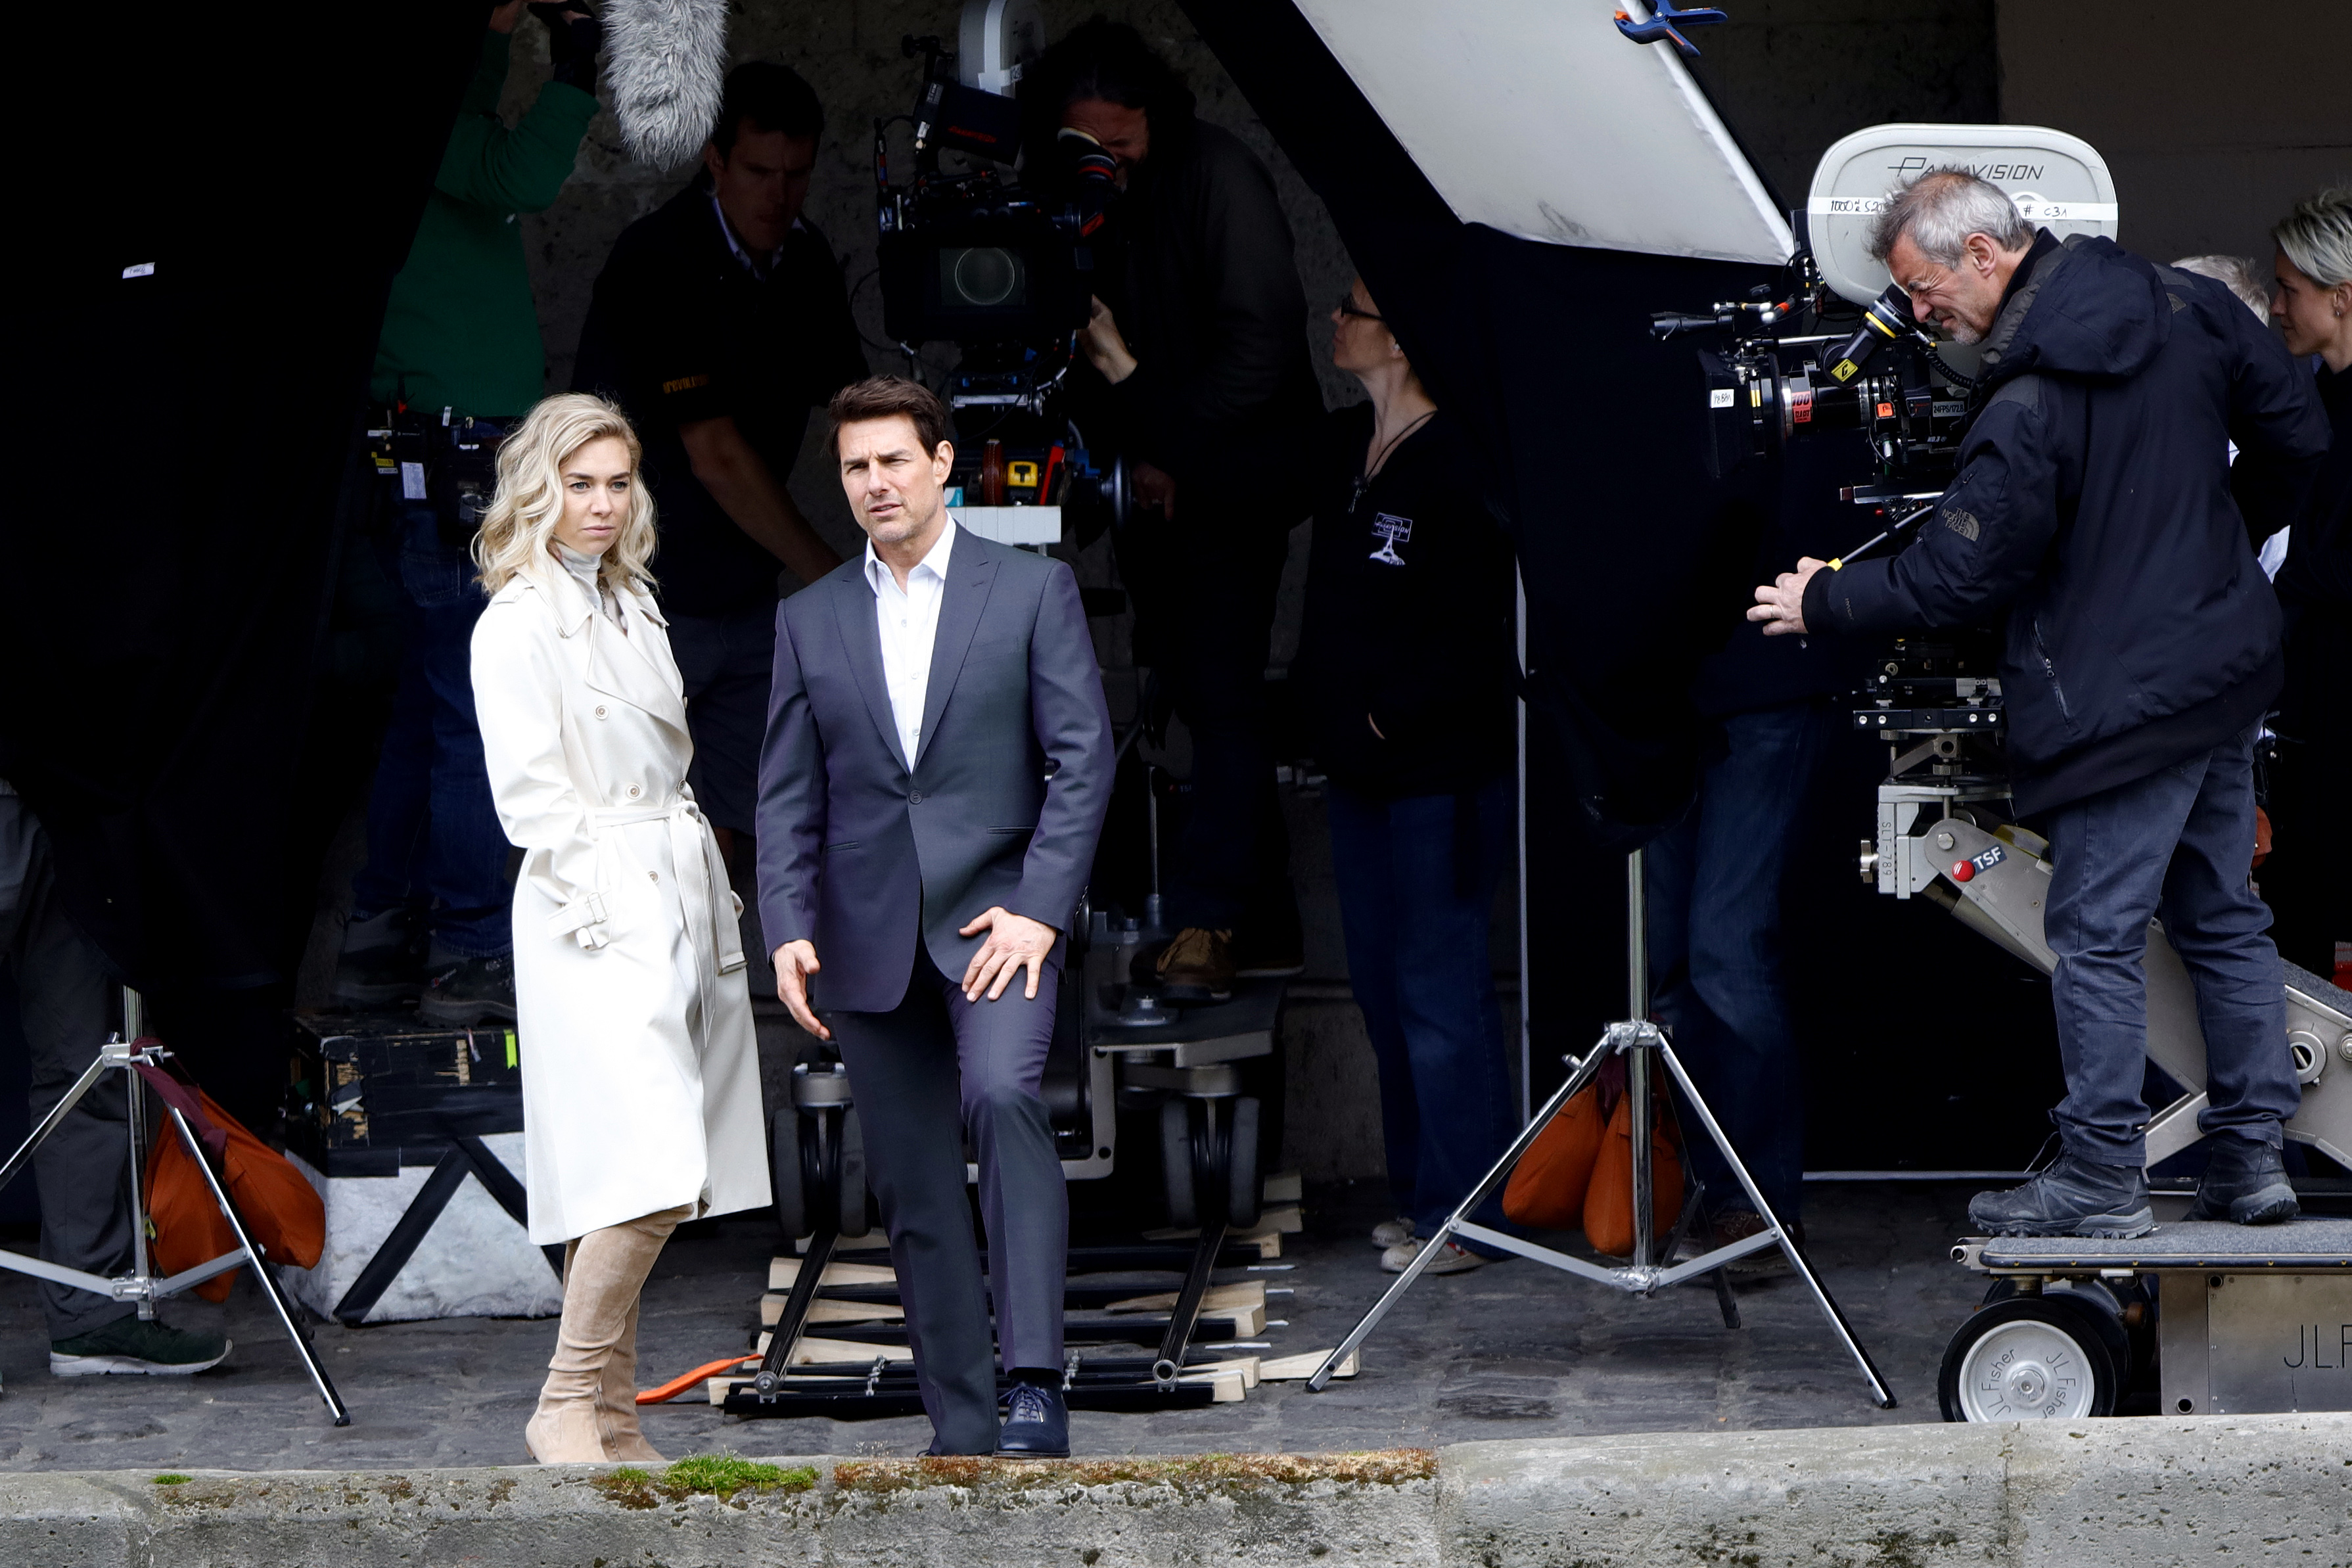 Tom Cruise seen kissing Vanessa Kirby during a scene for 'Mission Impossible 6' in Paris, France, on May 2, 2017 (Getty Images, TG)